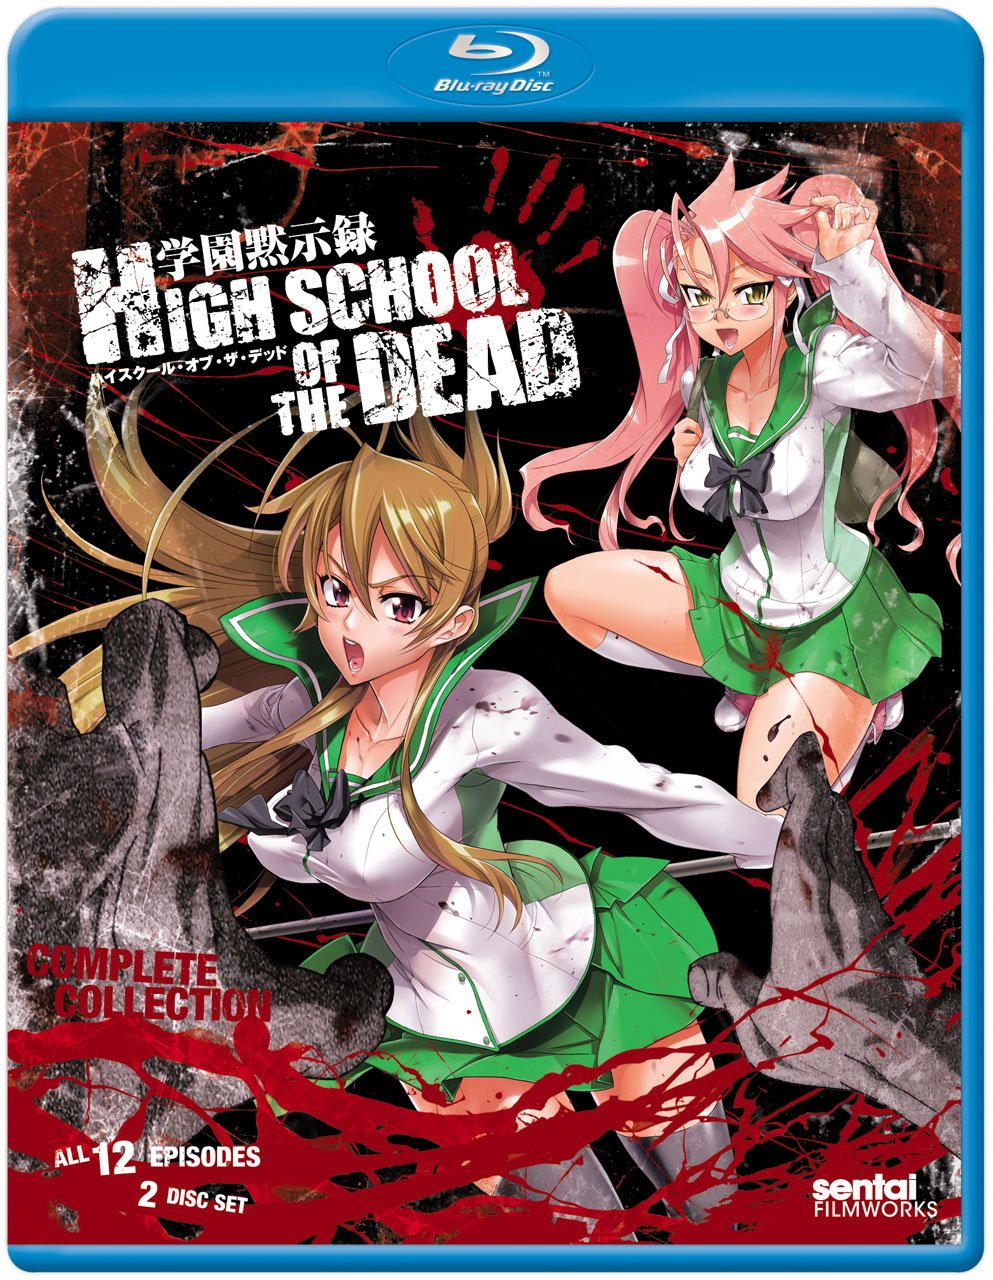 Anime cover: Highschool of the Dead